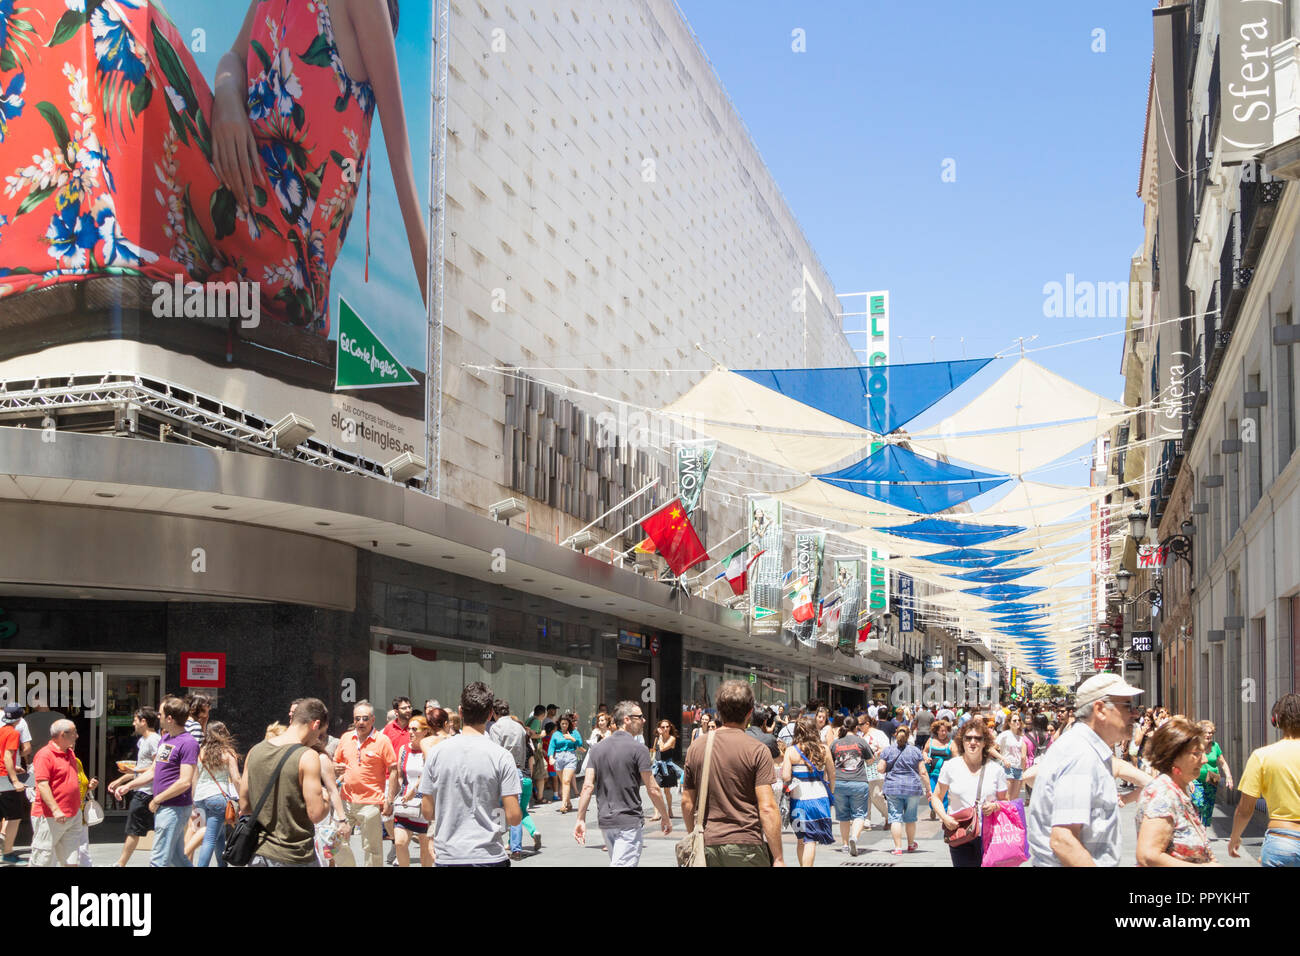 Shoppers outside El Corte Ingles department store in Madrid, Spain. Canopy over street to filter hot summer sun. - Stock Image